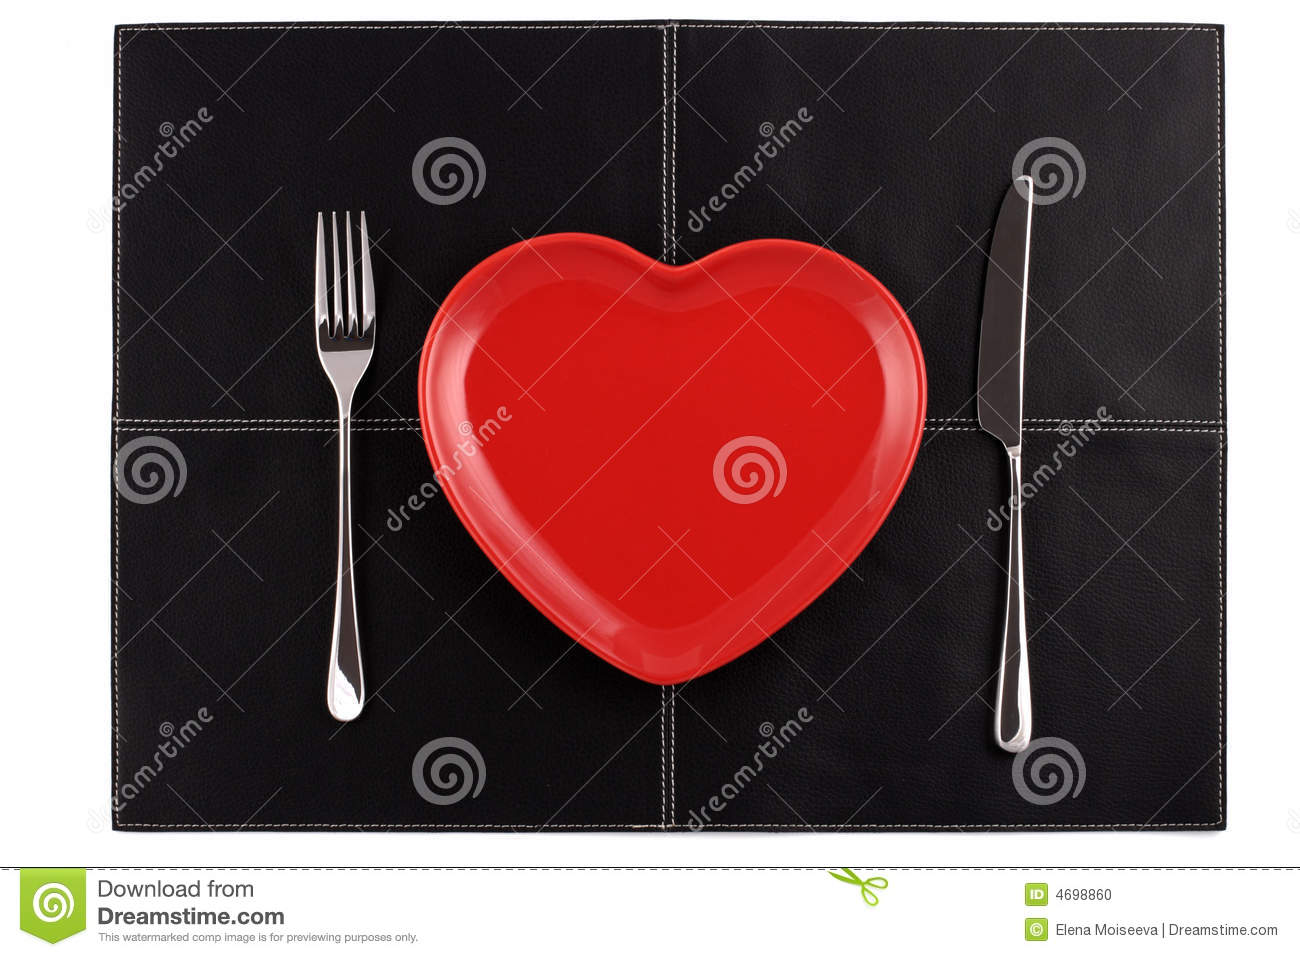 Empty red heart plate knife fork on black leather stock photo download comp ccuart